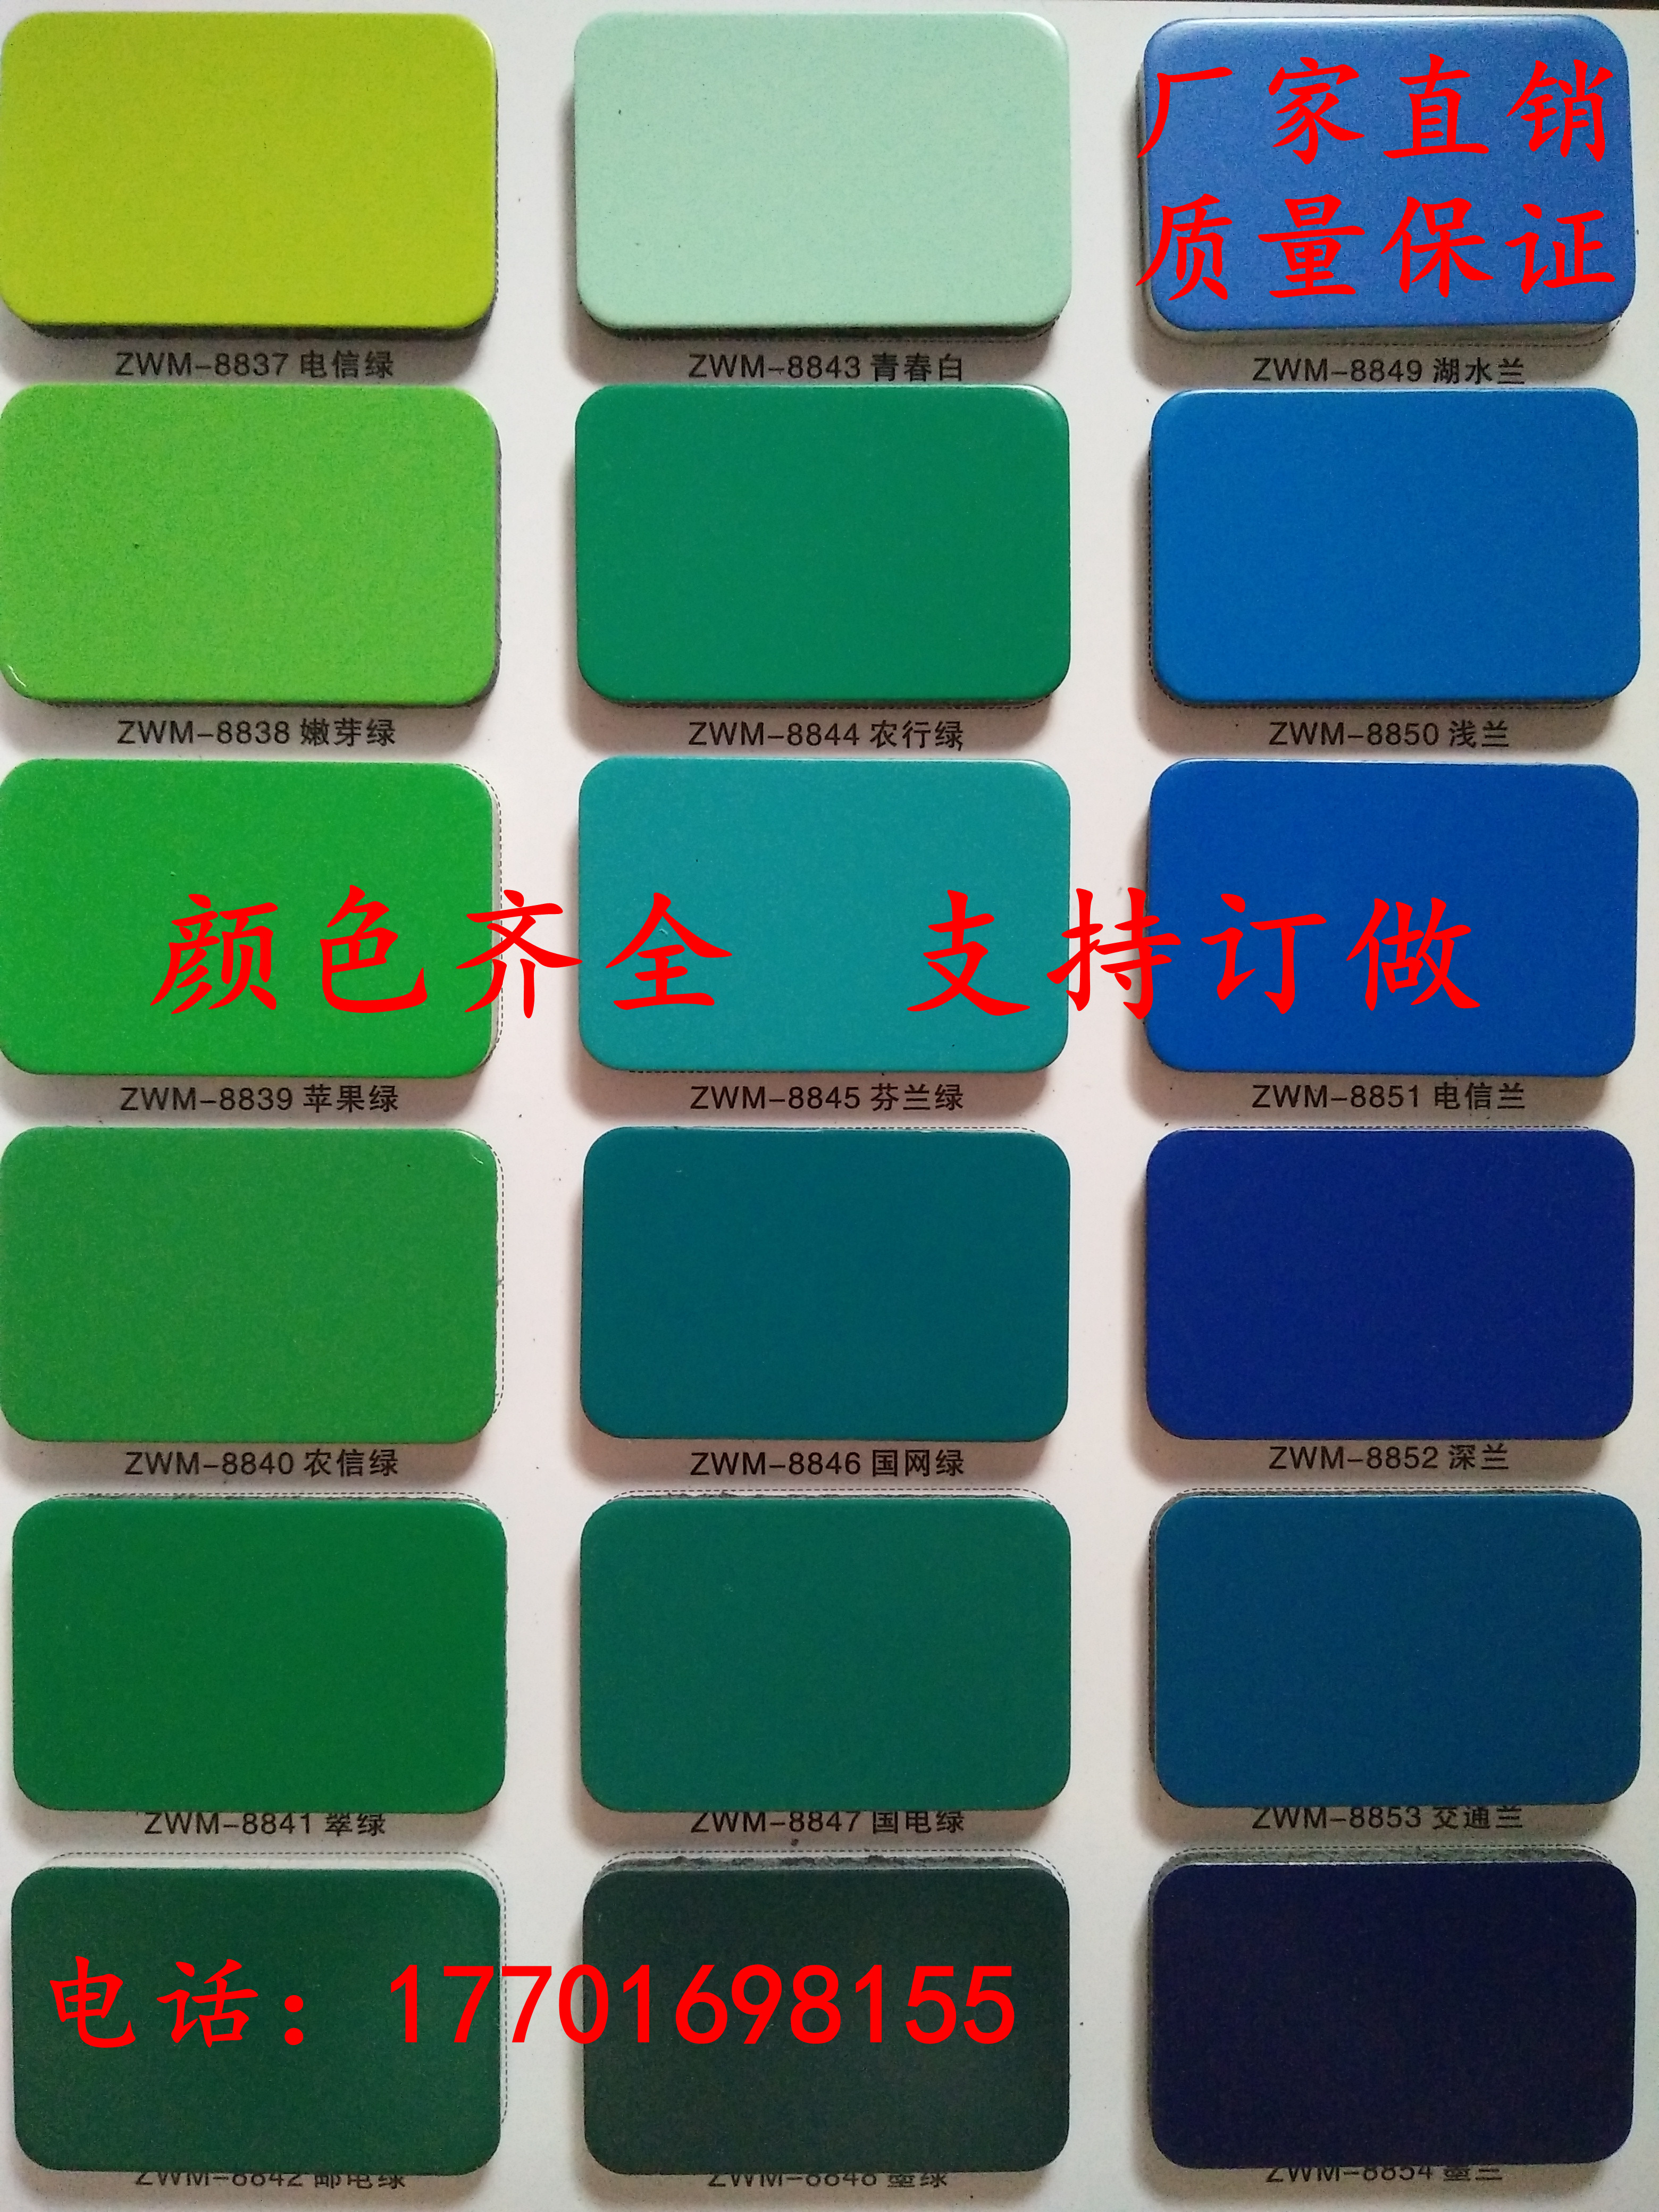 Shanghai auspicious 4mm35 wire wall advertising signs background door hanging aluminum plate plate factory direct sales